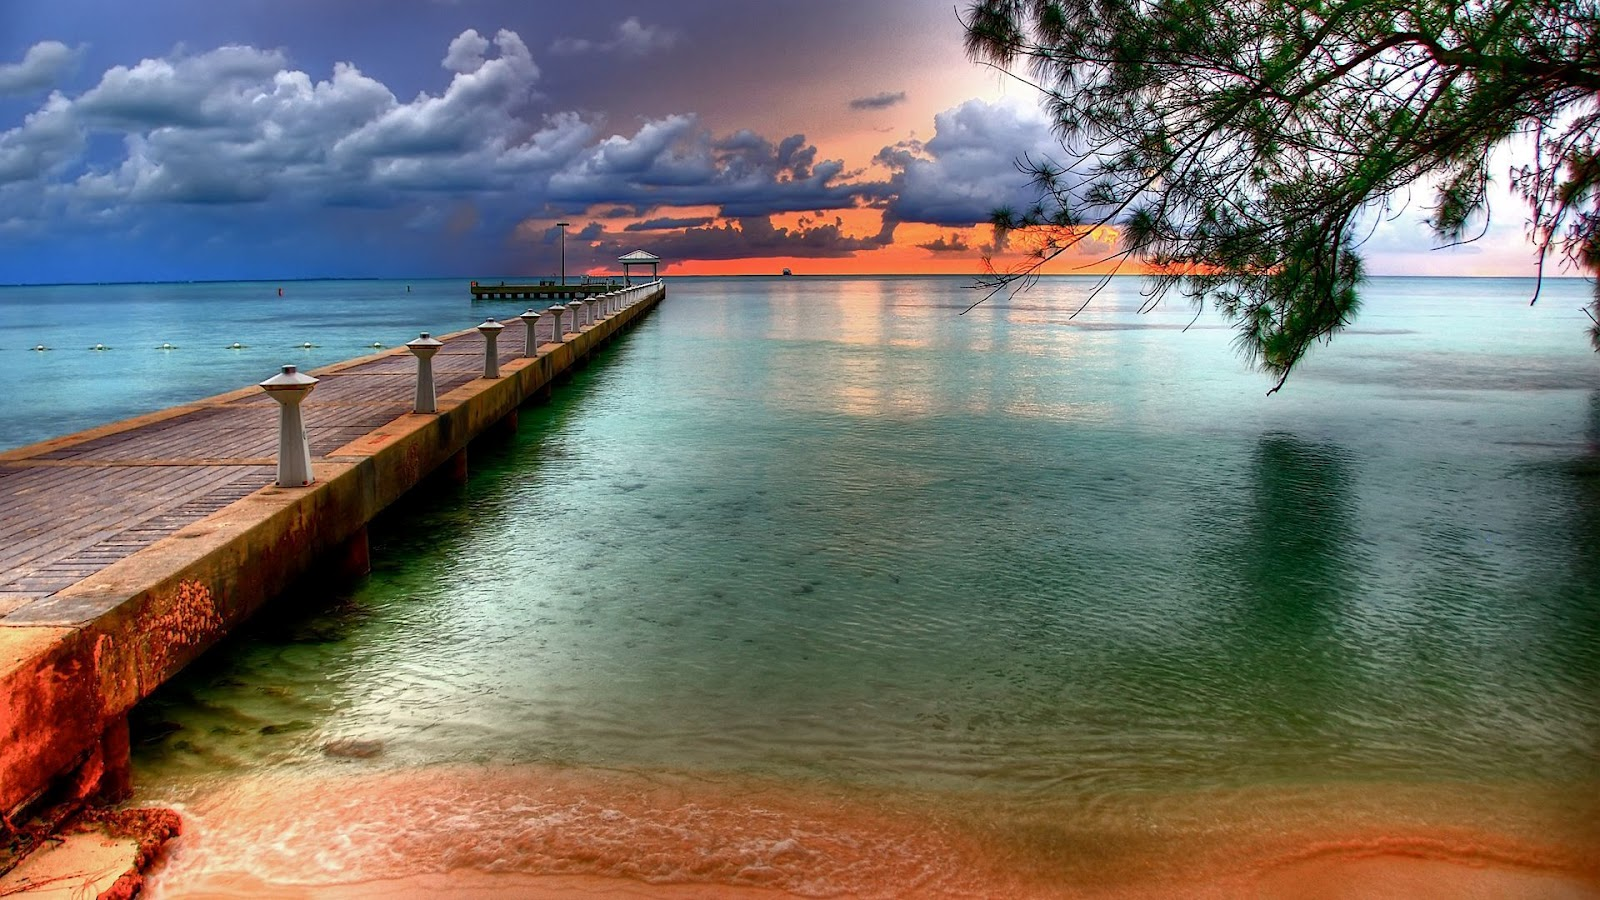 Hd wallpaper for laptop - Flyover Beach Nature Hd Widescreen Wallpapers For Laptop And Pc